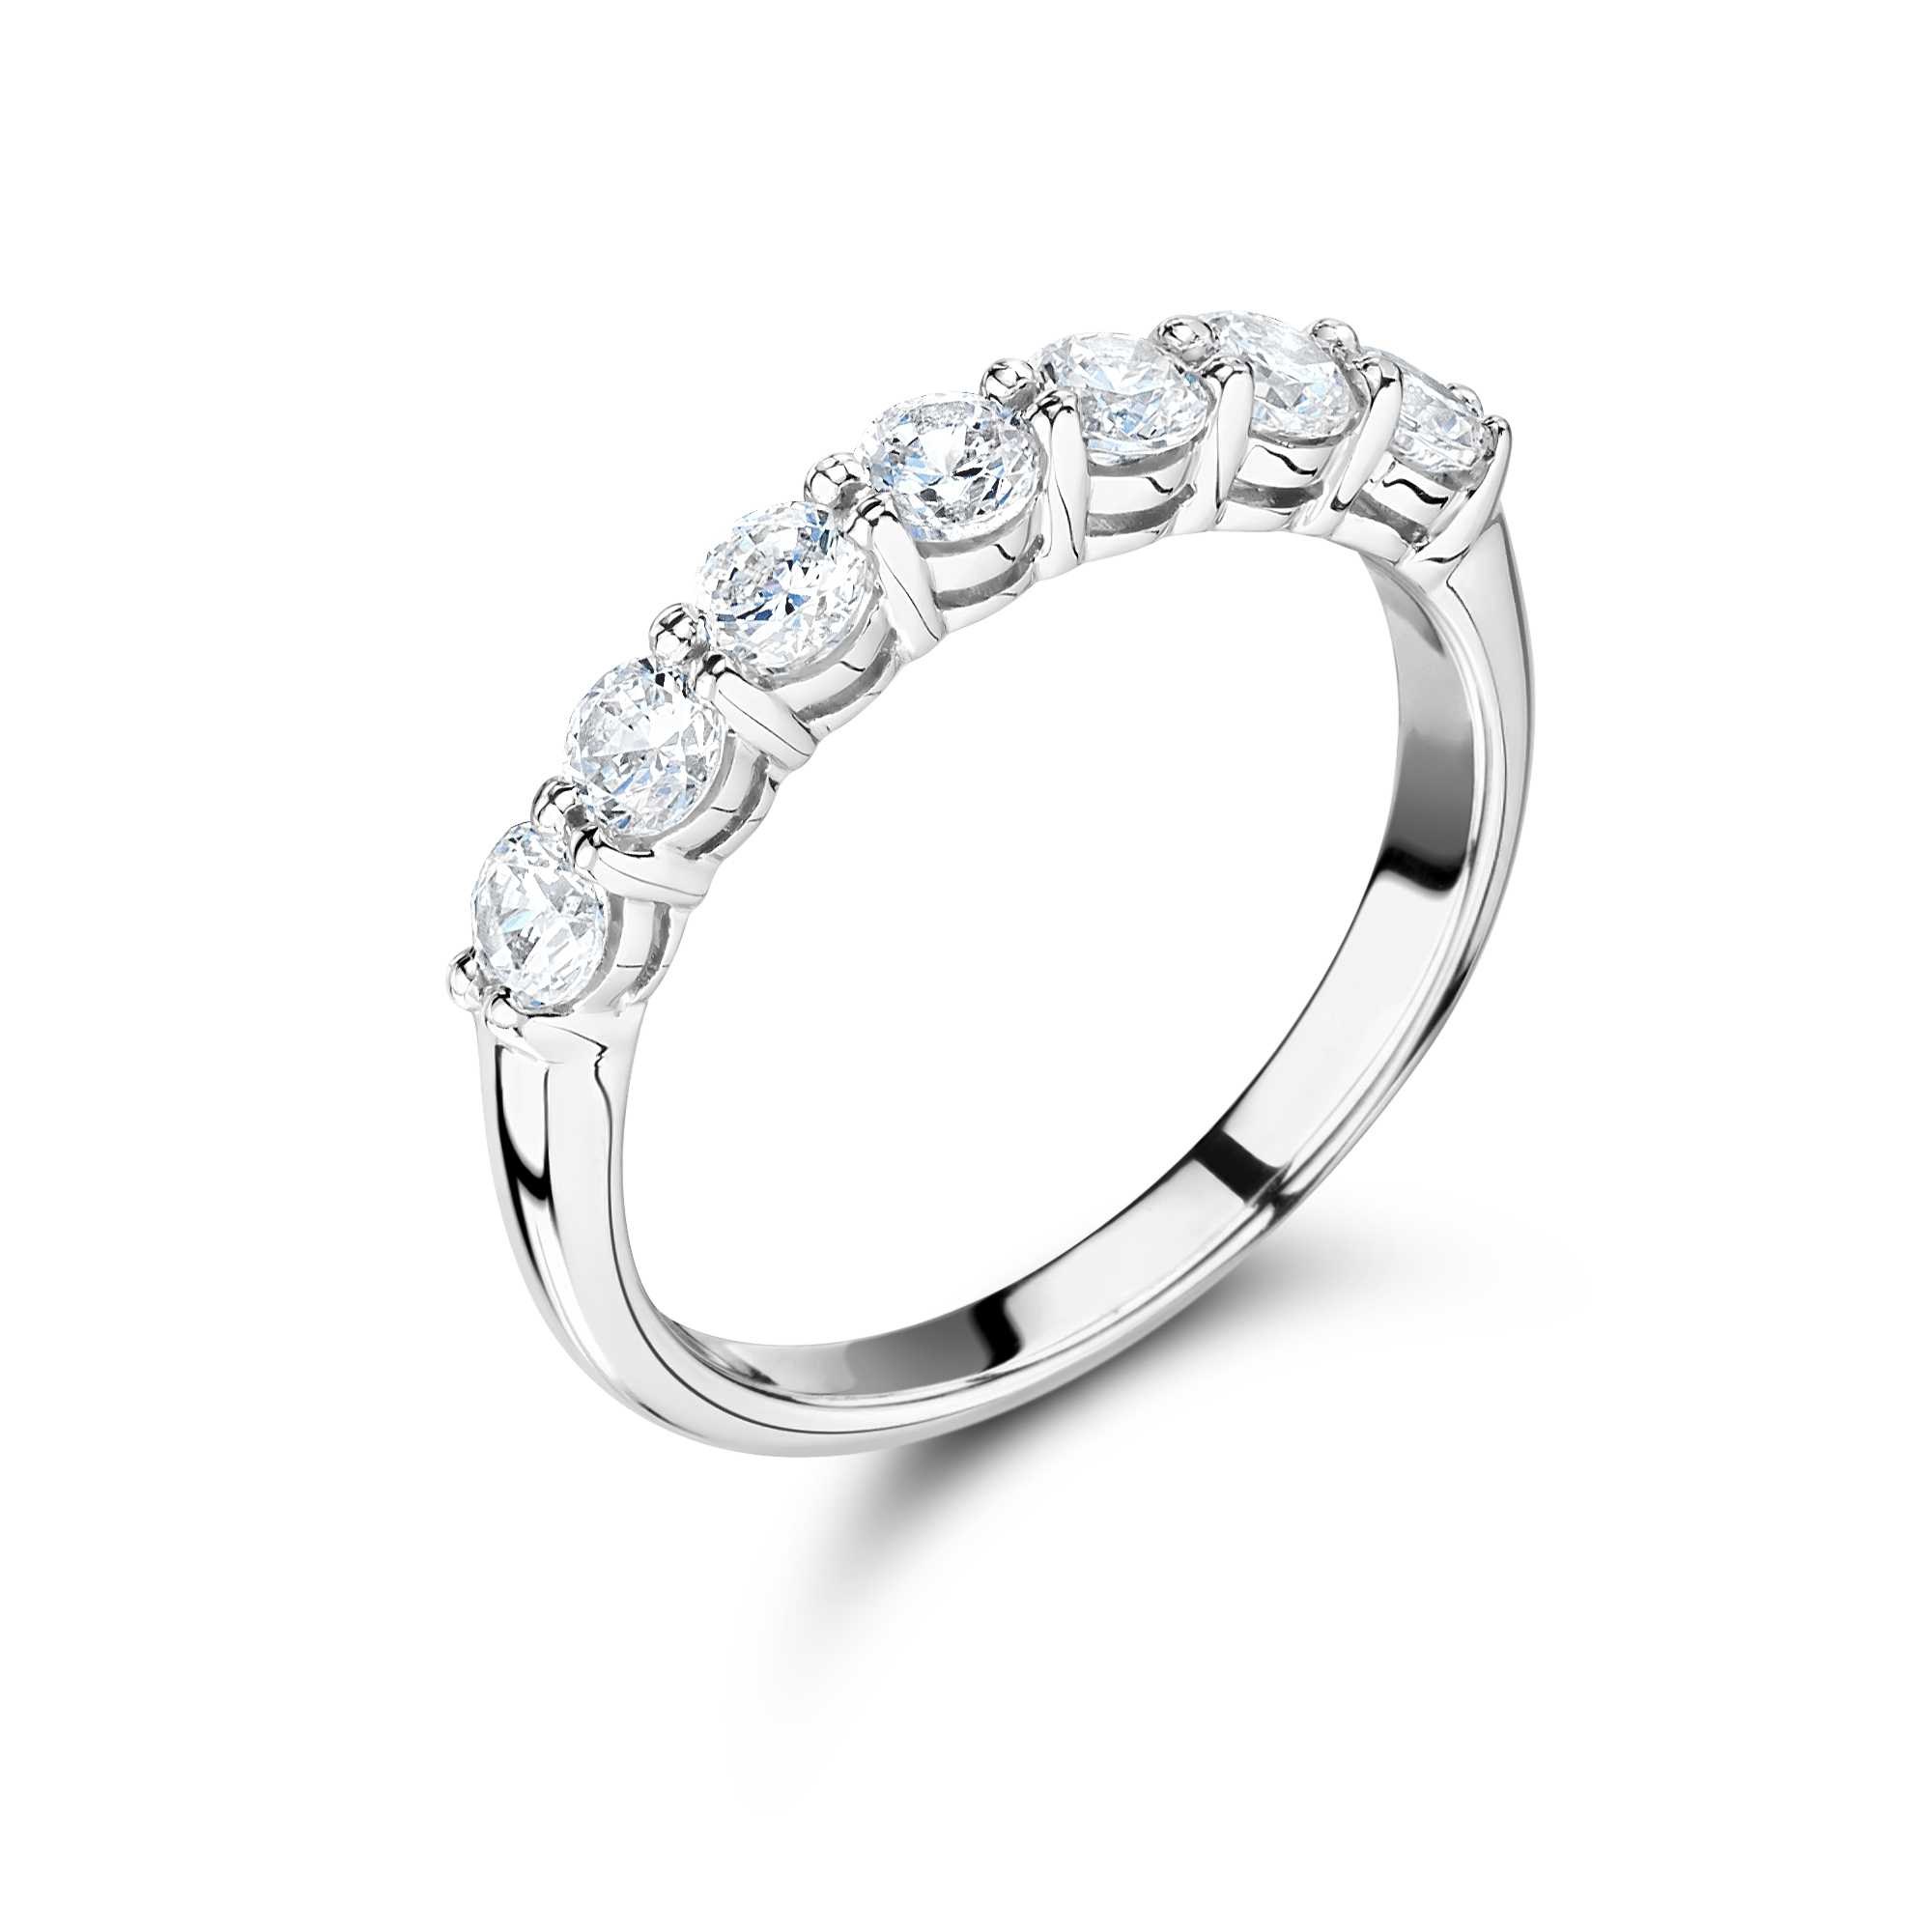 polish engineered each high prong accentuated an rounded on single ceiling by classic a beautiful of diamonds uncomplicated thoughtful and string elegant diamond perfectly crown product